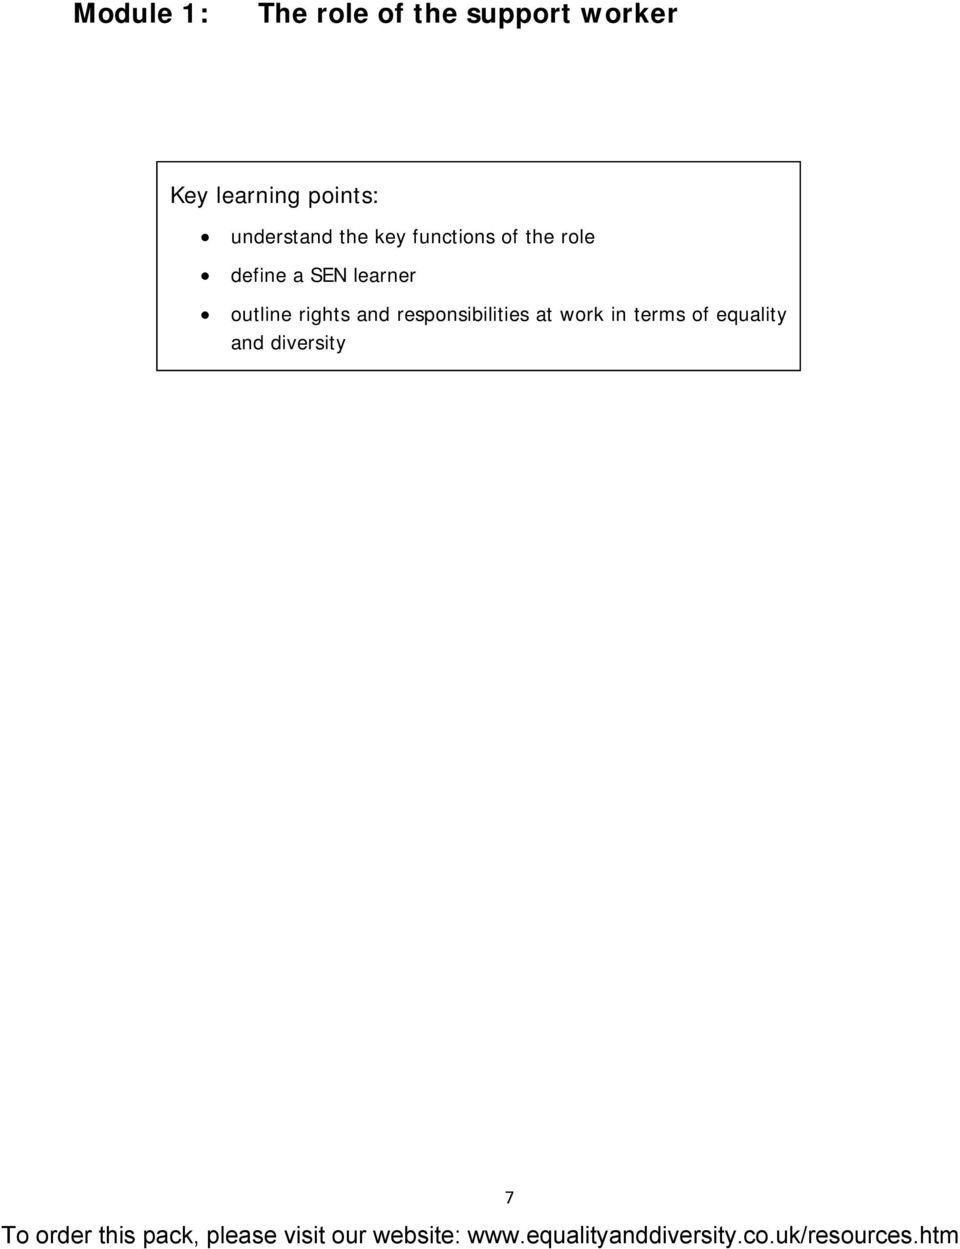 the role define a SEN learner outline rights and